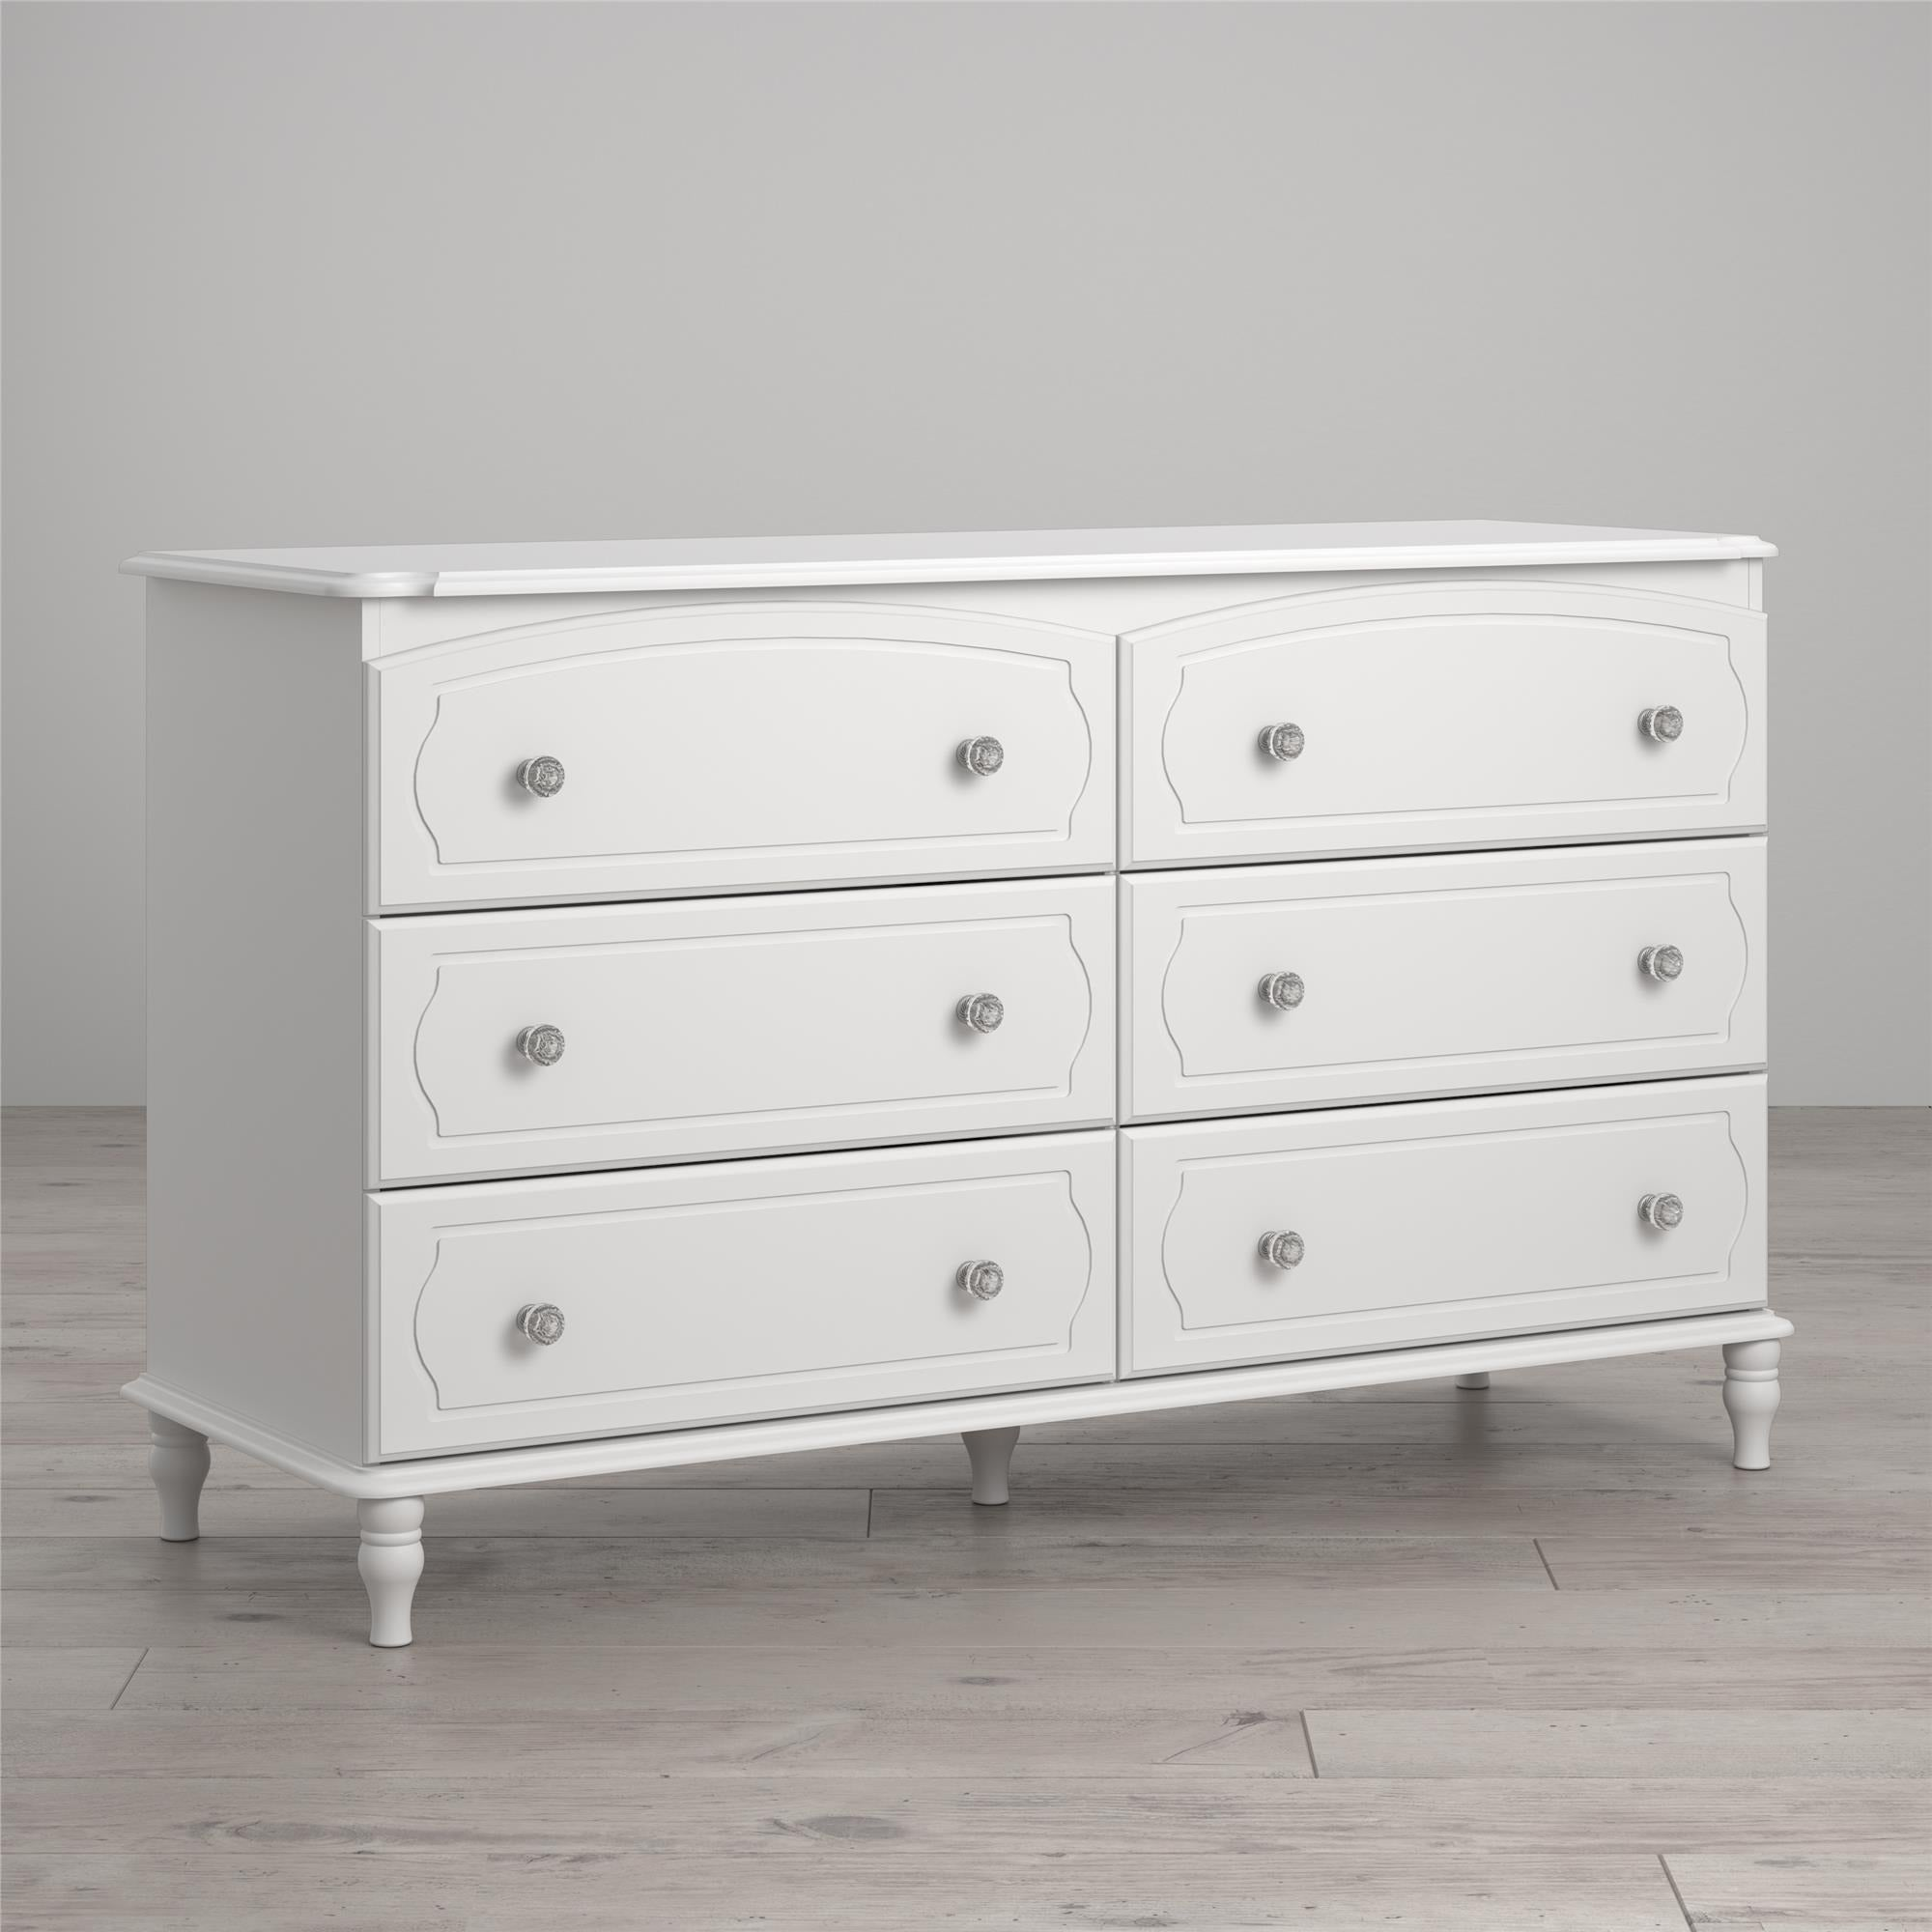 metal white drawer storage clad modern hk and bedroom blu dot dresser